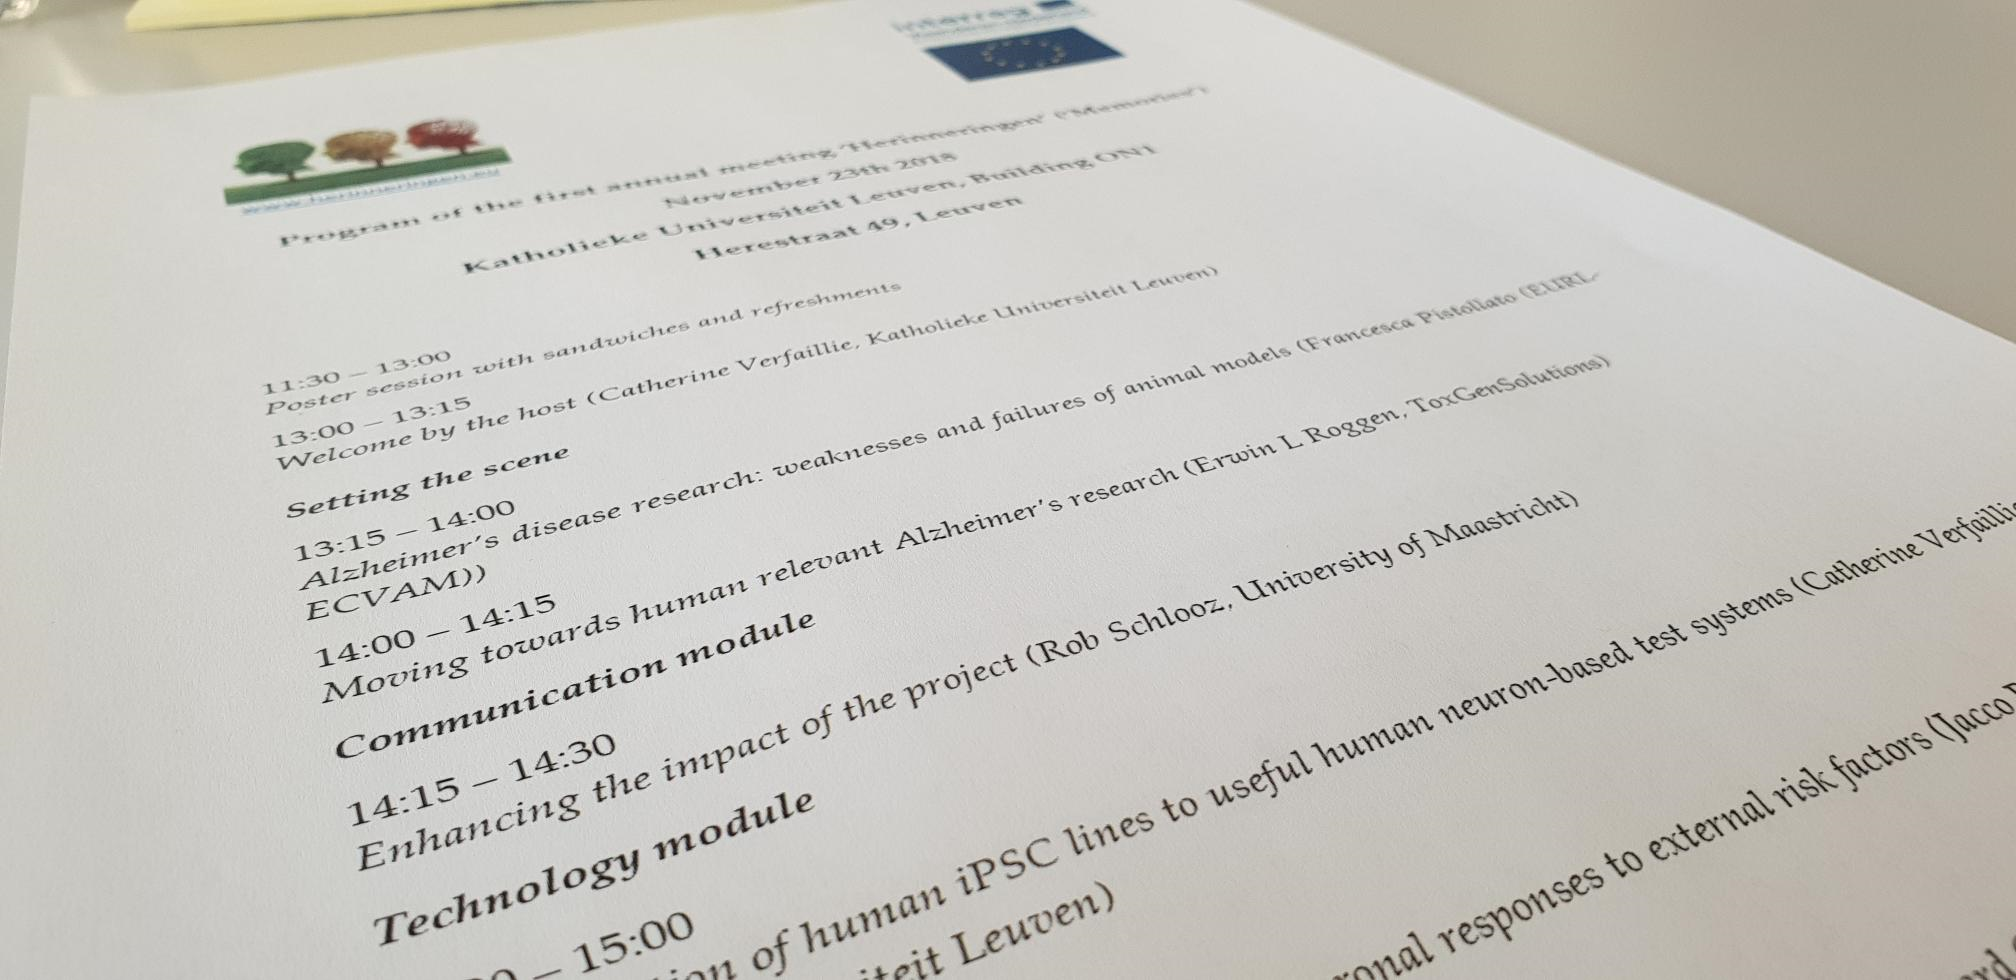 THE INTERREG. PROJECT HERINNERINGEN ('MEMORIES') 2018 SYMPOSIUM ON EARLY BIOMARKERS FOR SPORADIC ALZHEIMERS